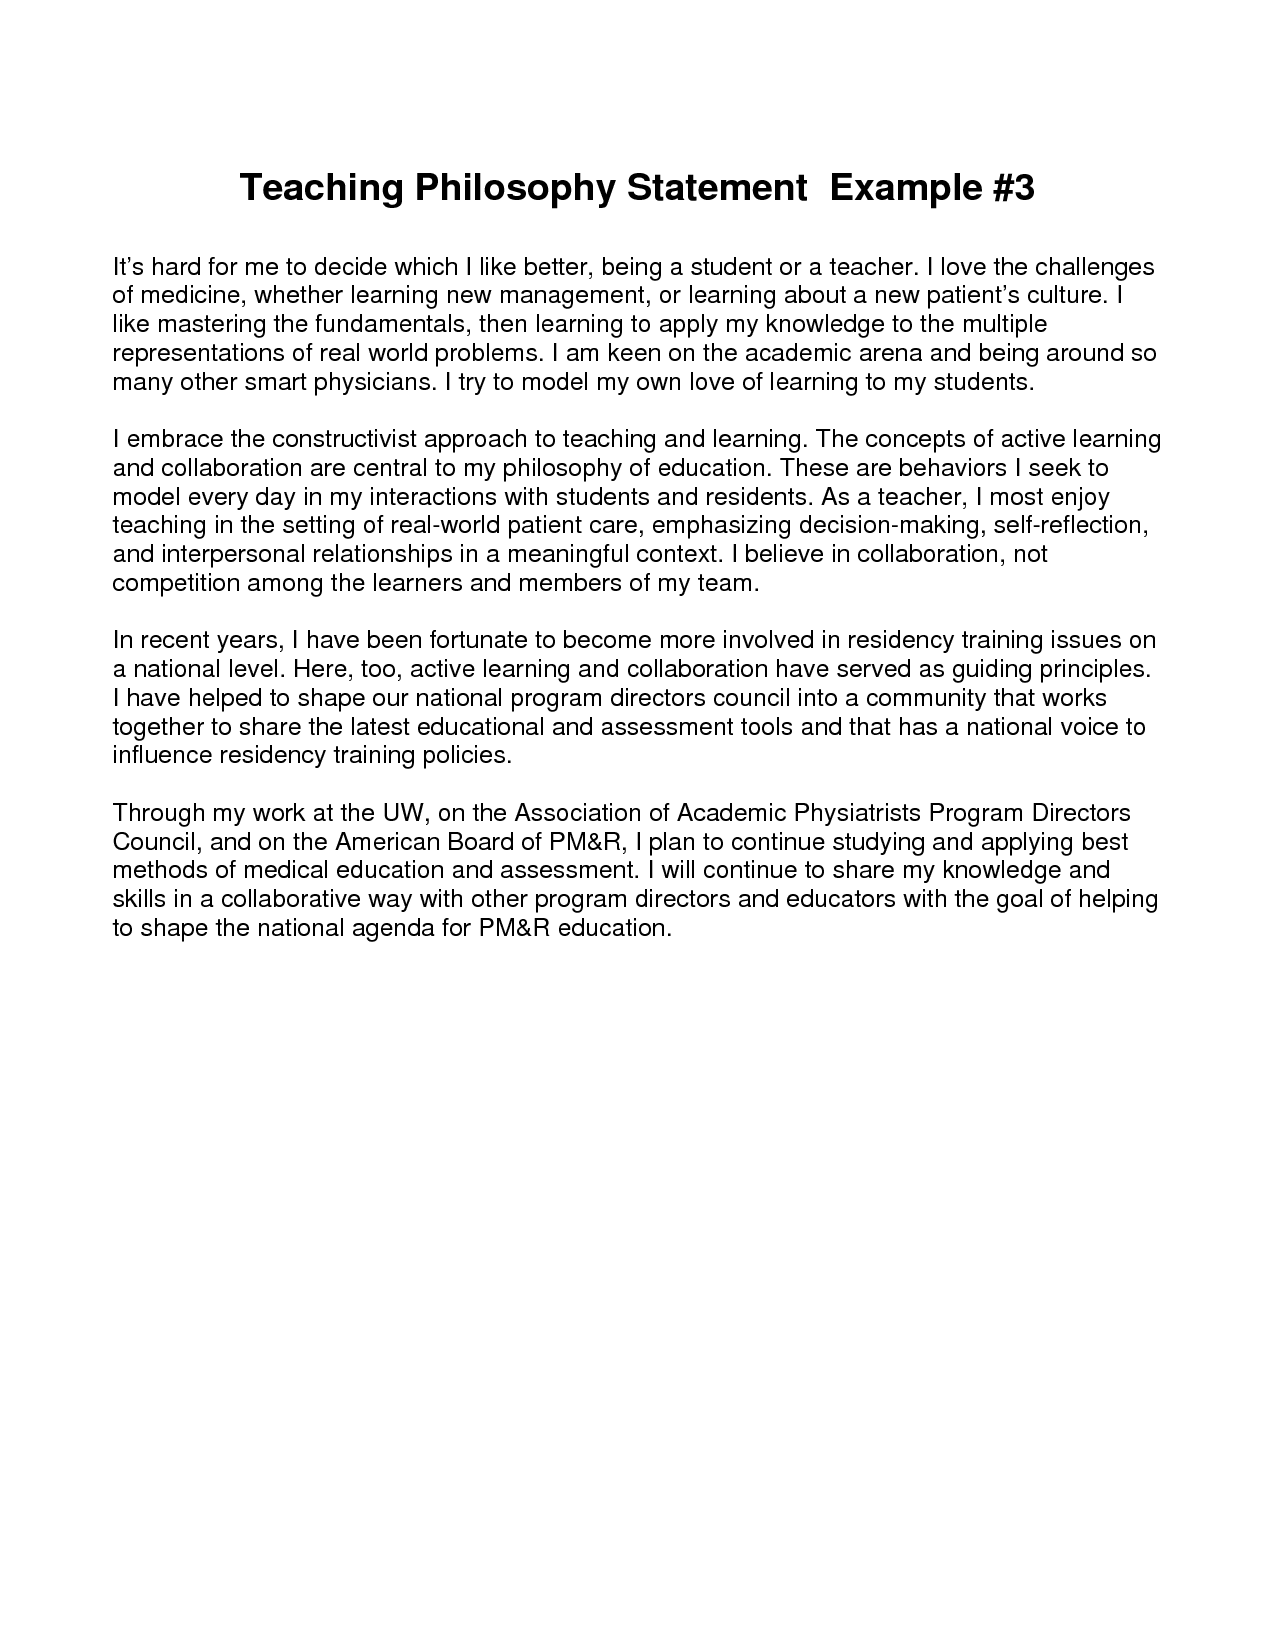 acirc educational philosophy statement samples cda writing a philosophy of teaching statement ucat